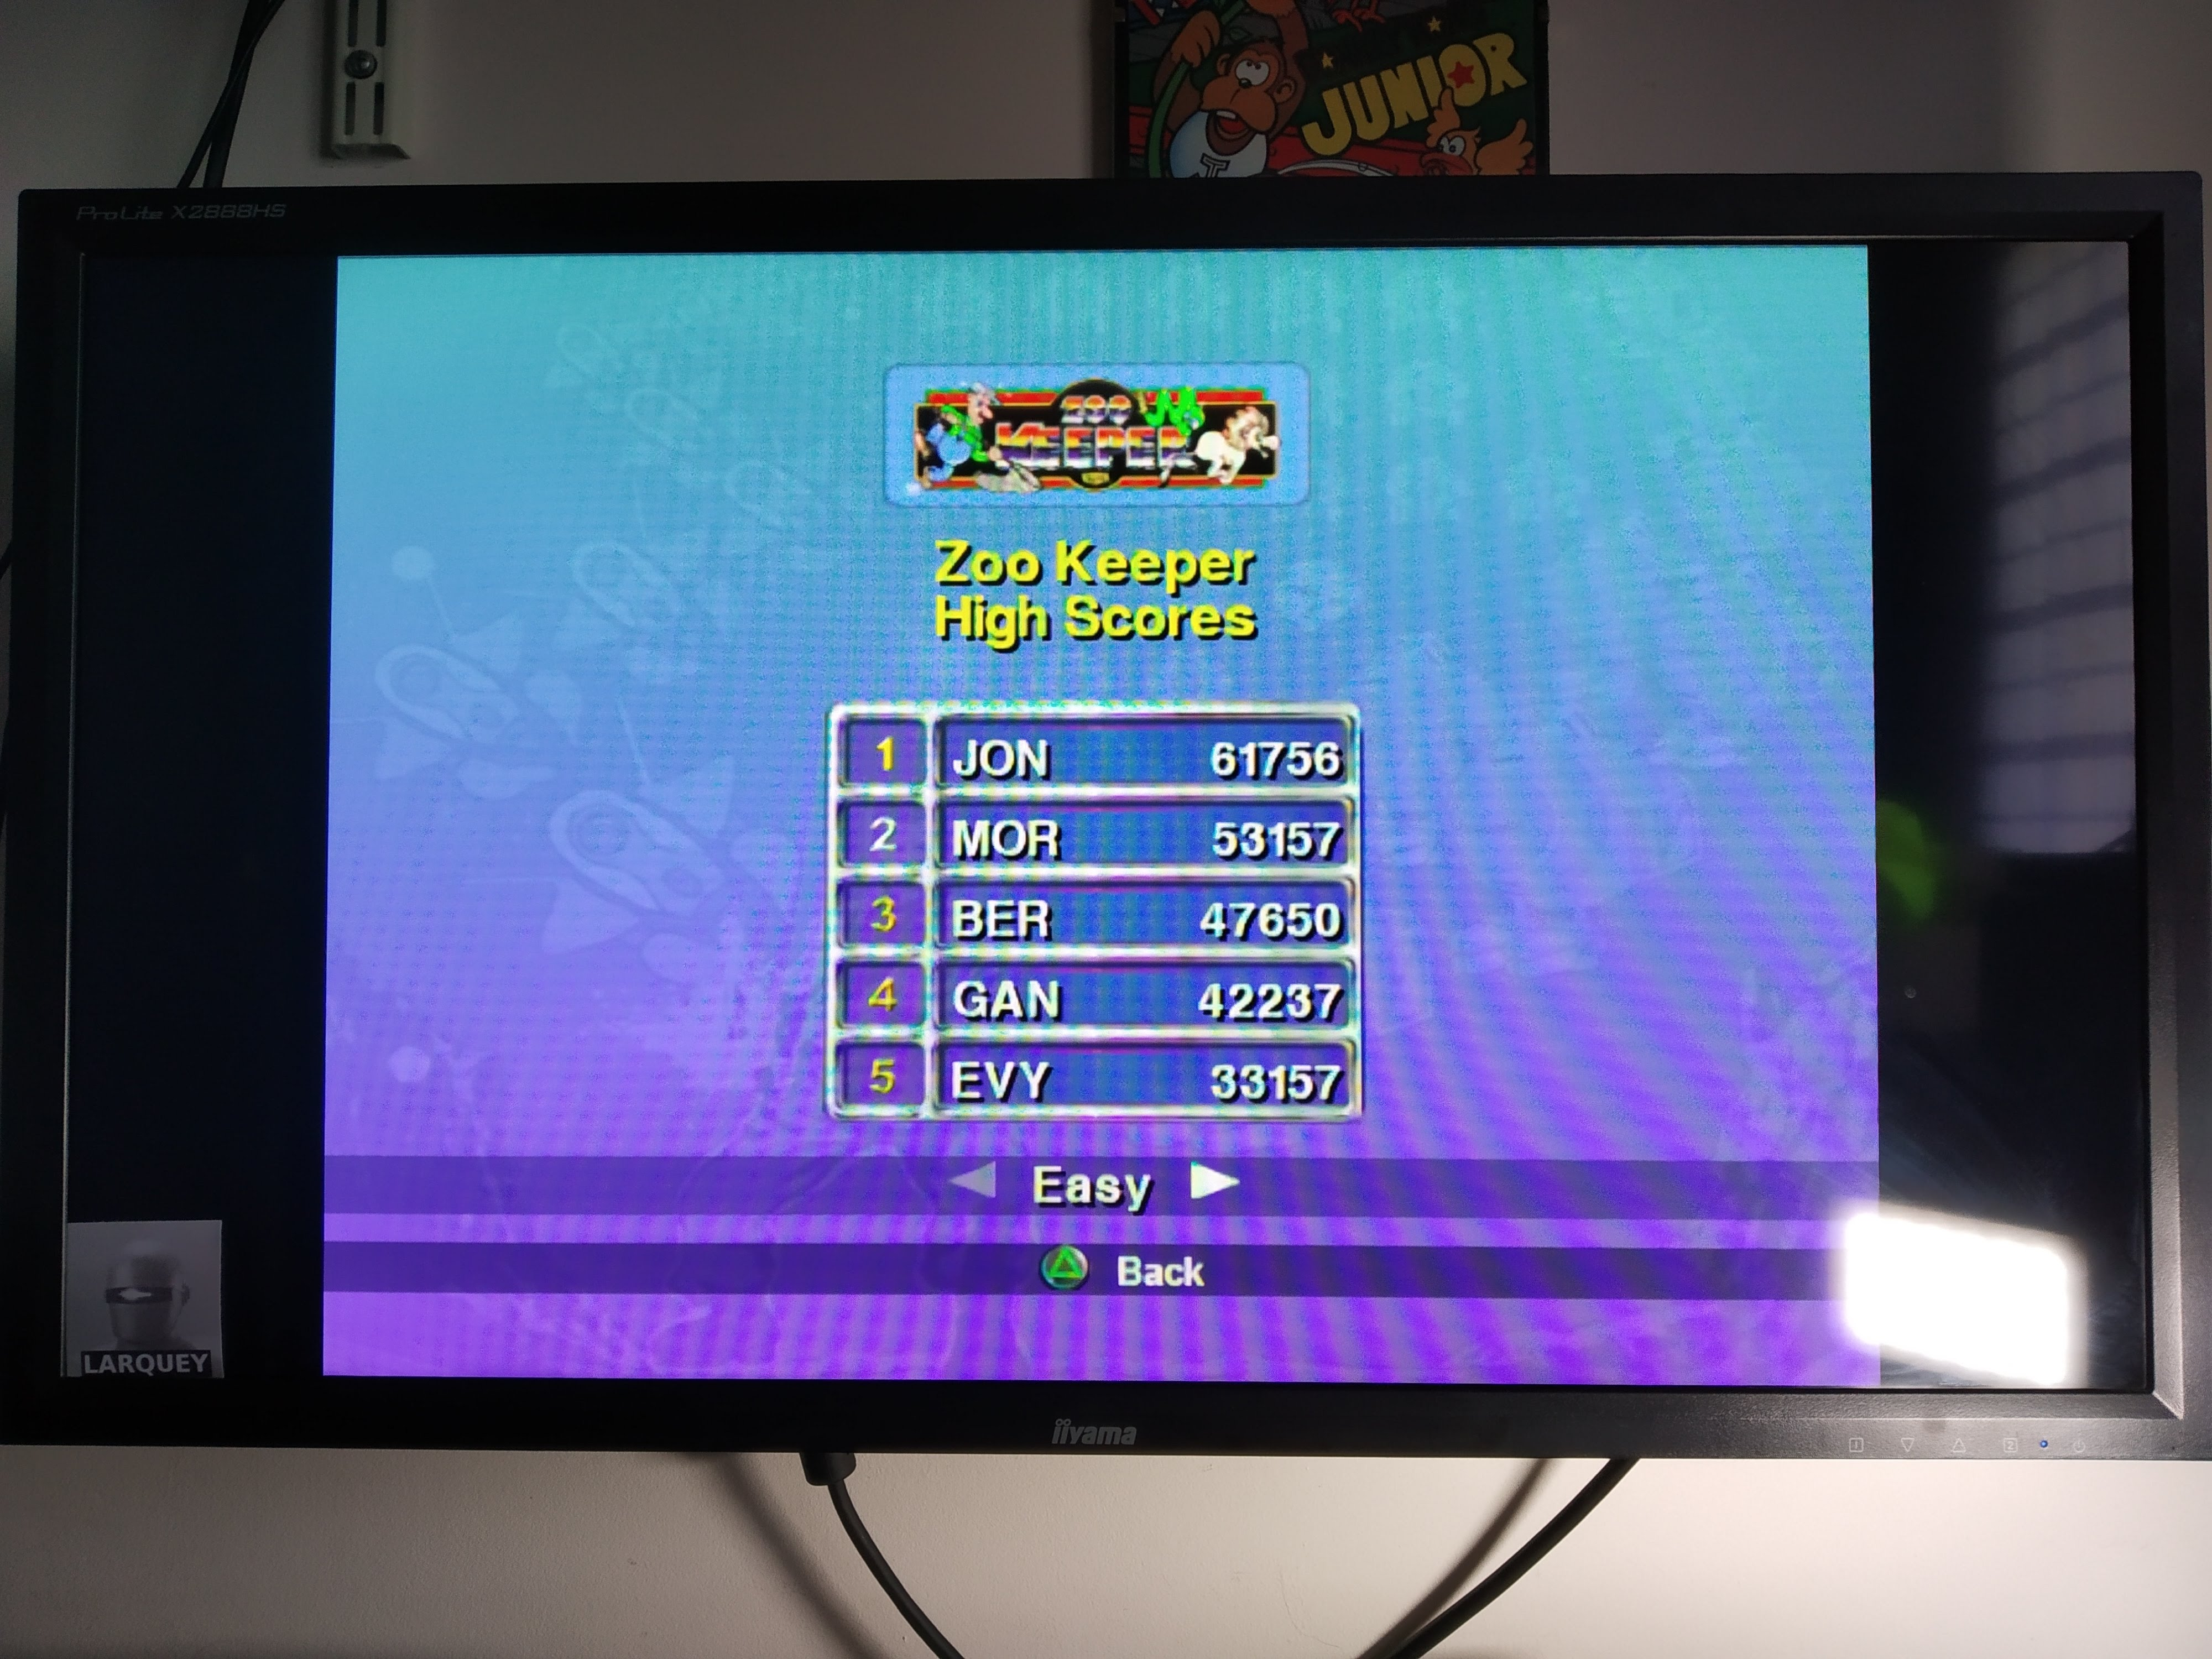 Larquey: Taito Legends: Zoo Keeper [Easy] (Playstation 2 Emulated) 47,650 points on 2020-07-31 08:43:24